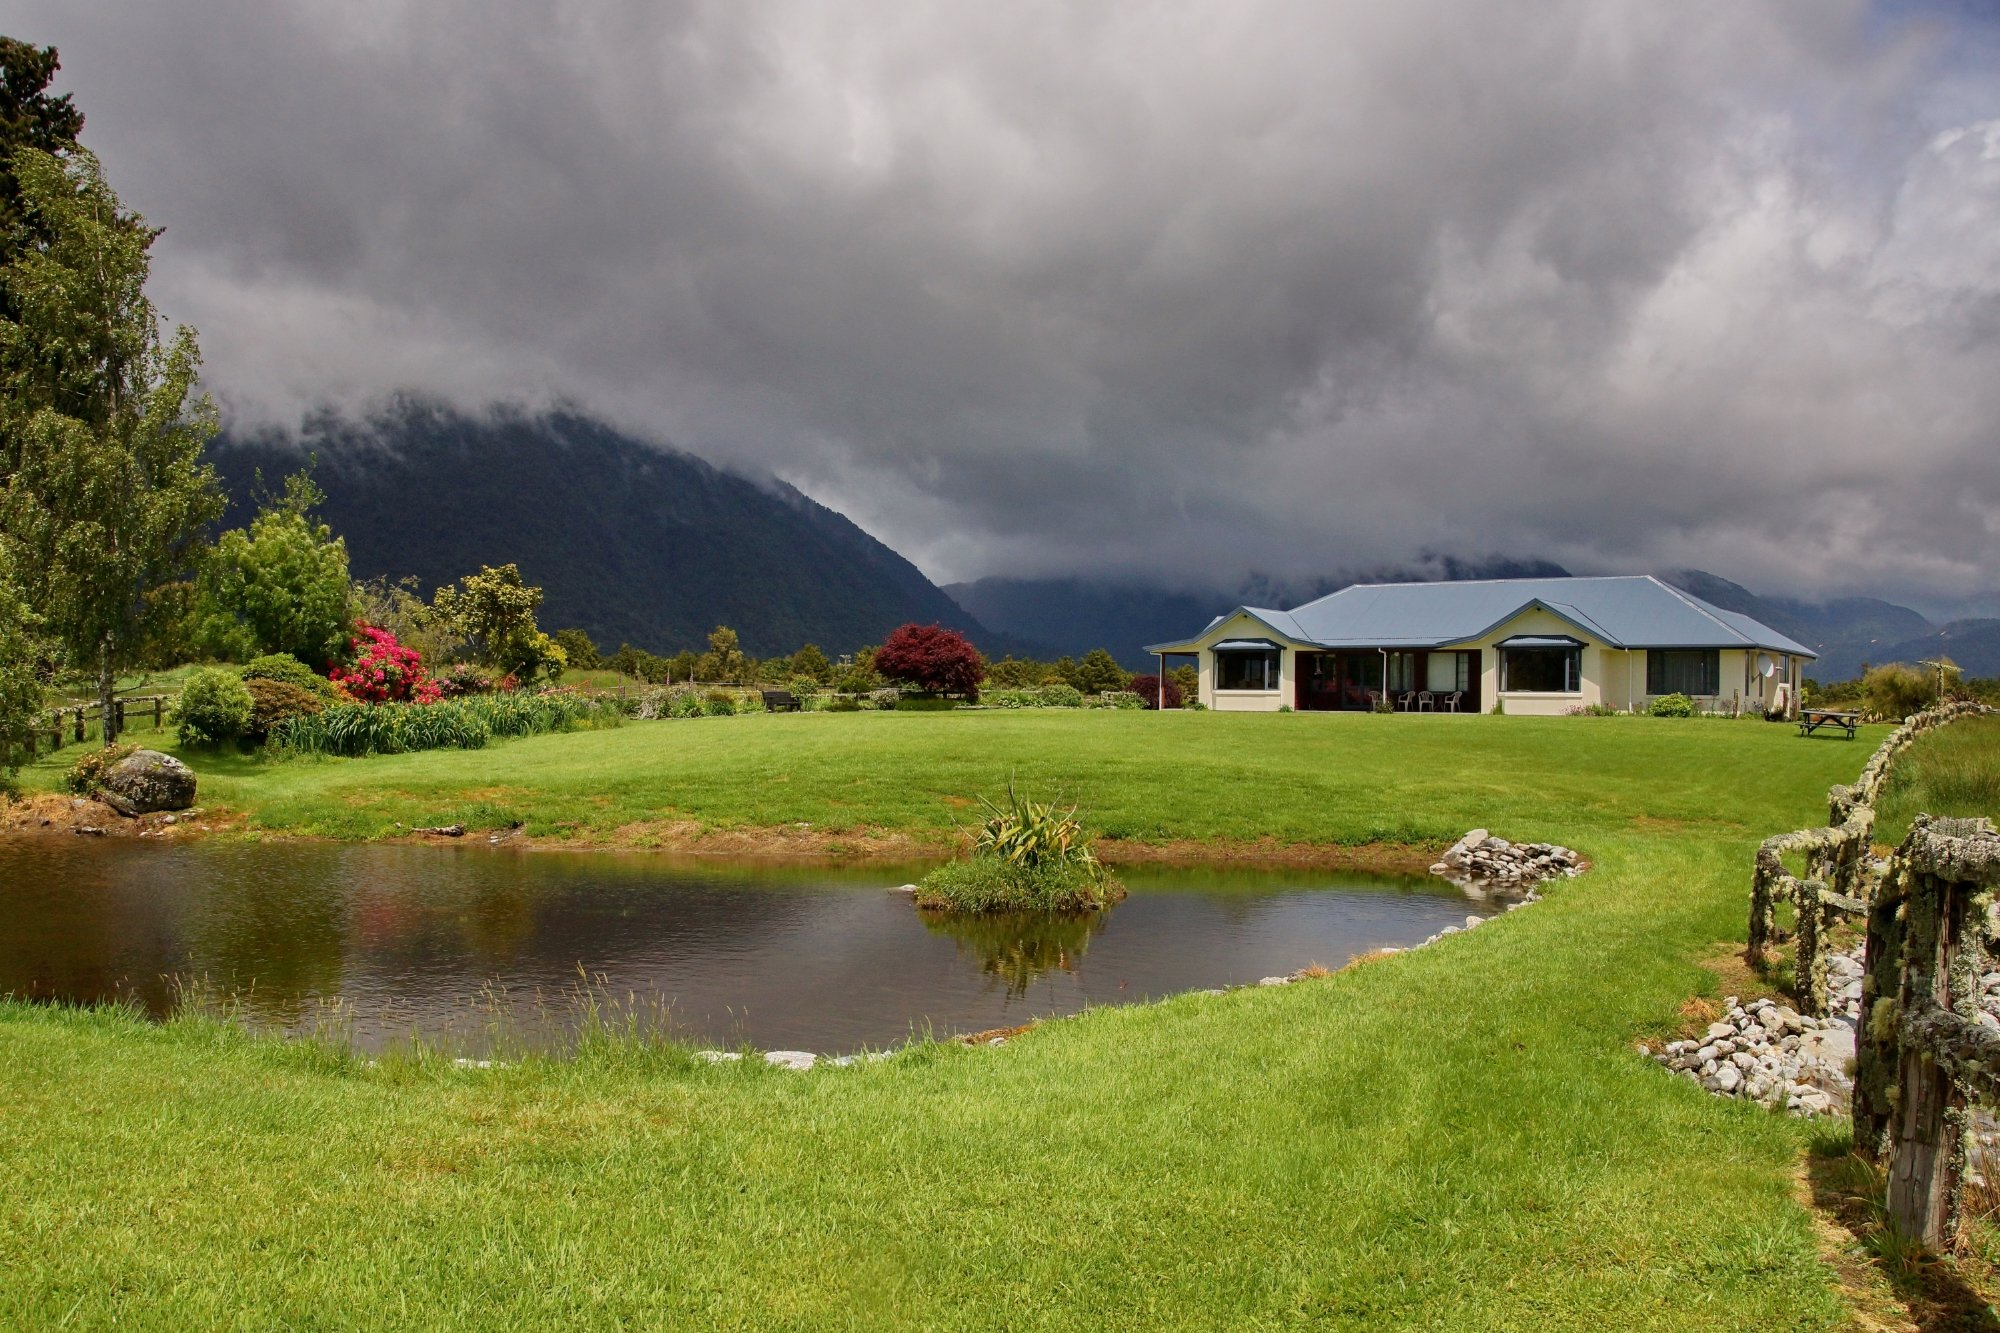 Fox Glacier Mountainview Bed and Breakfast